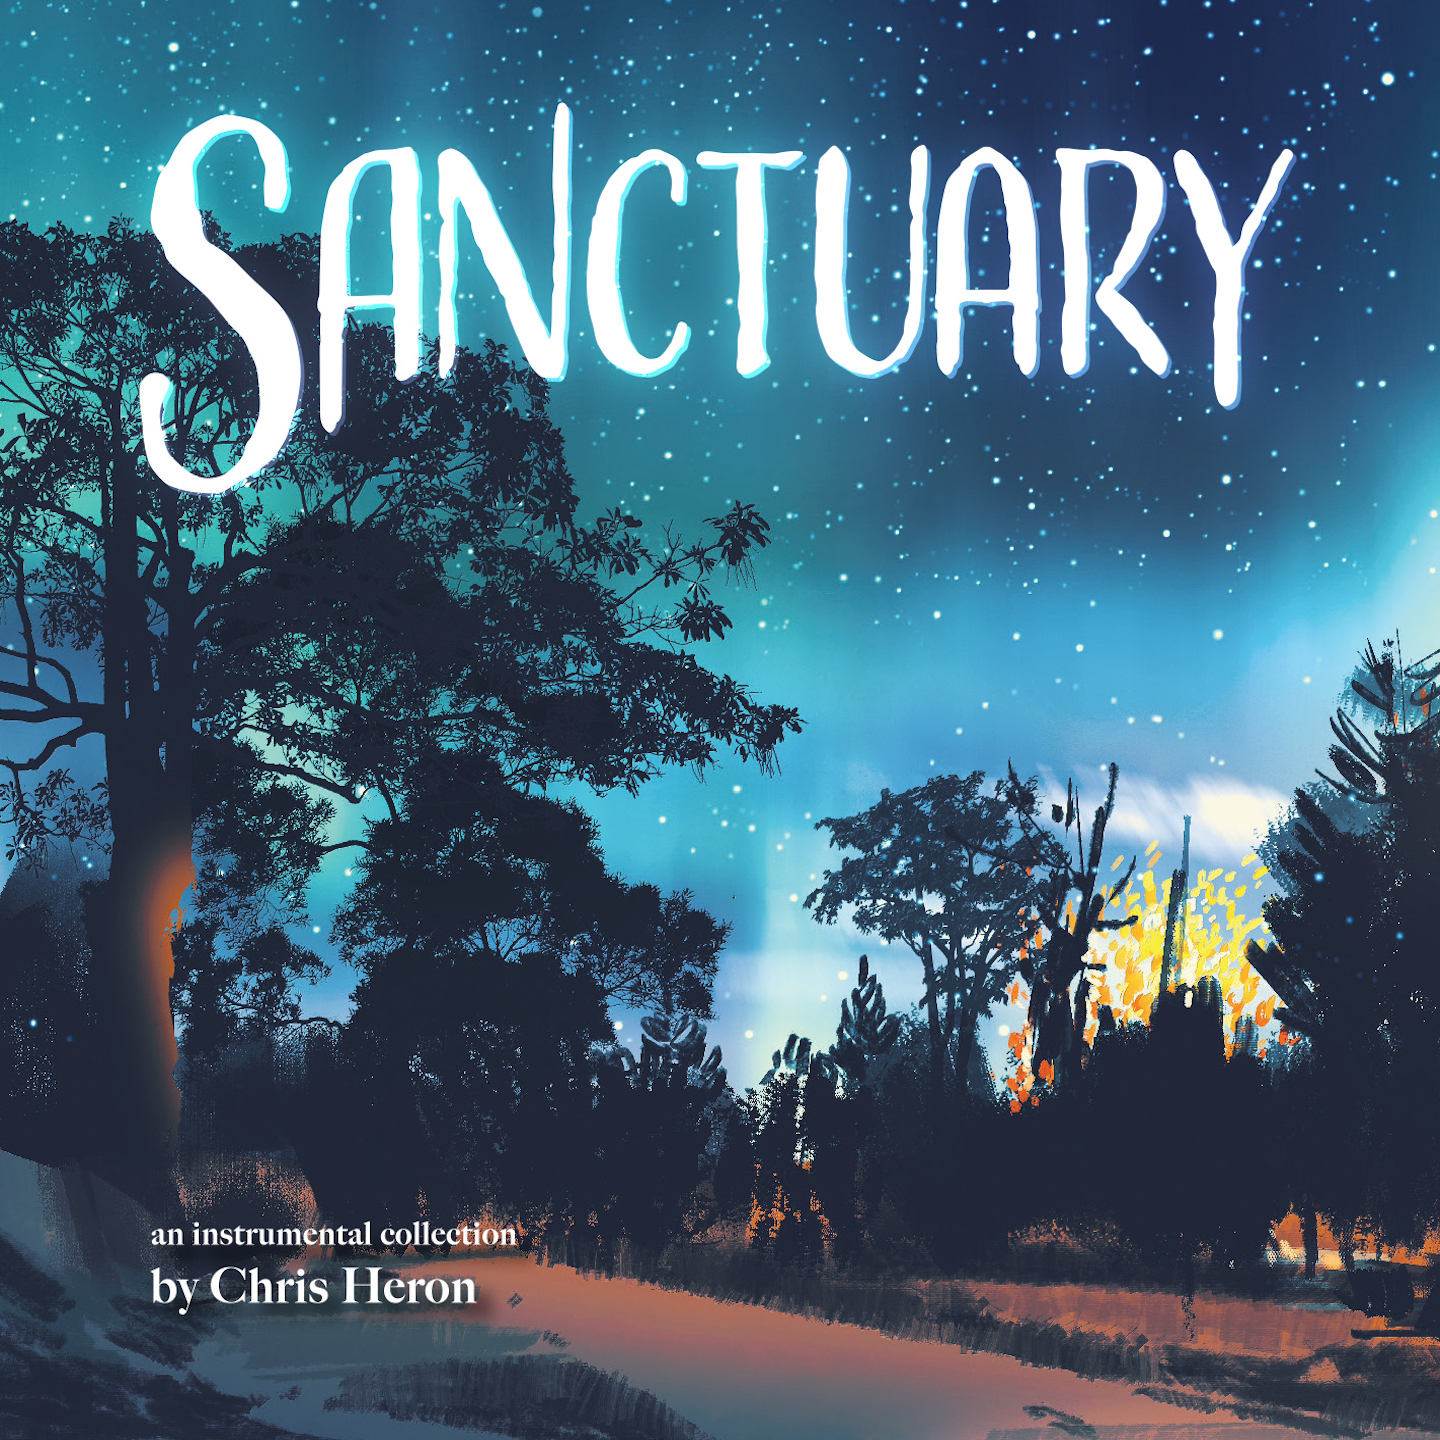 Chris Heron – Sanctuary | Fluttery Records